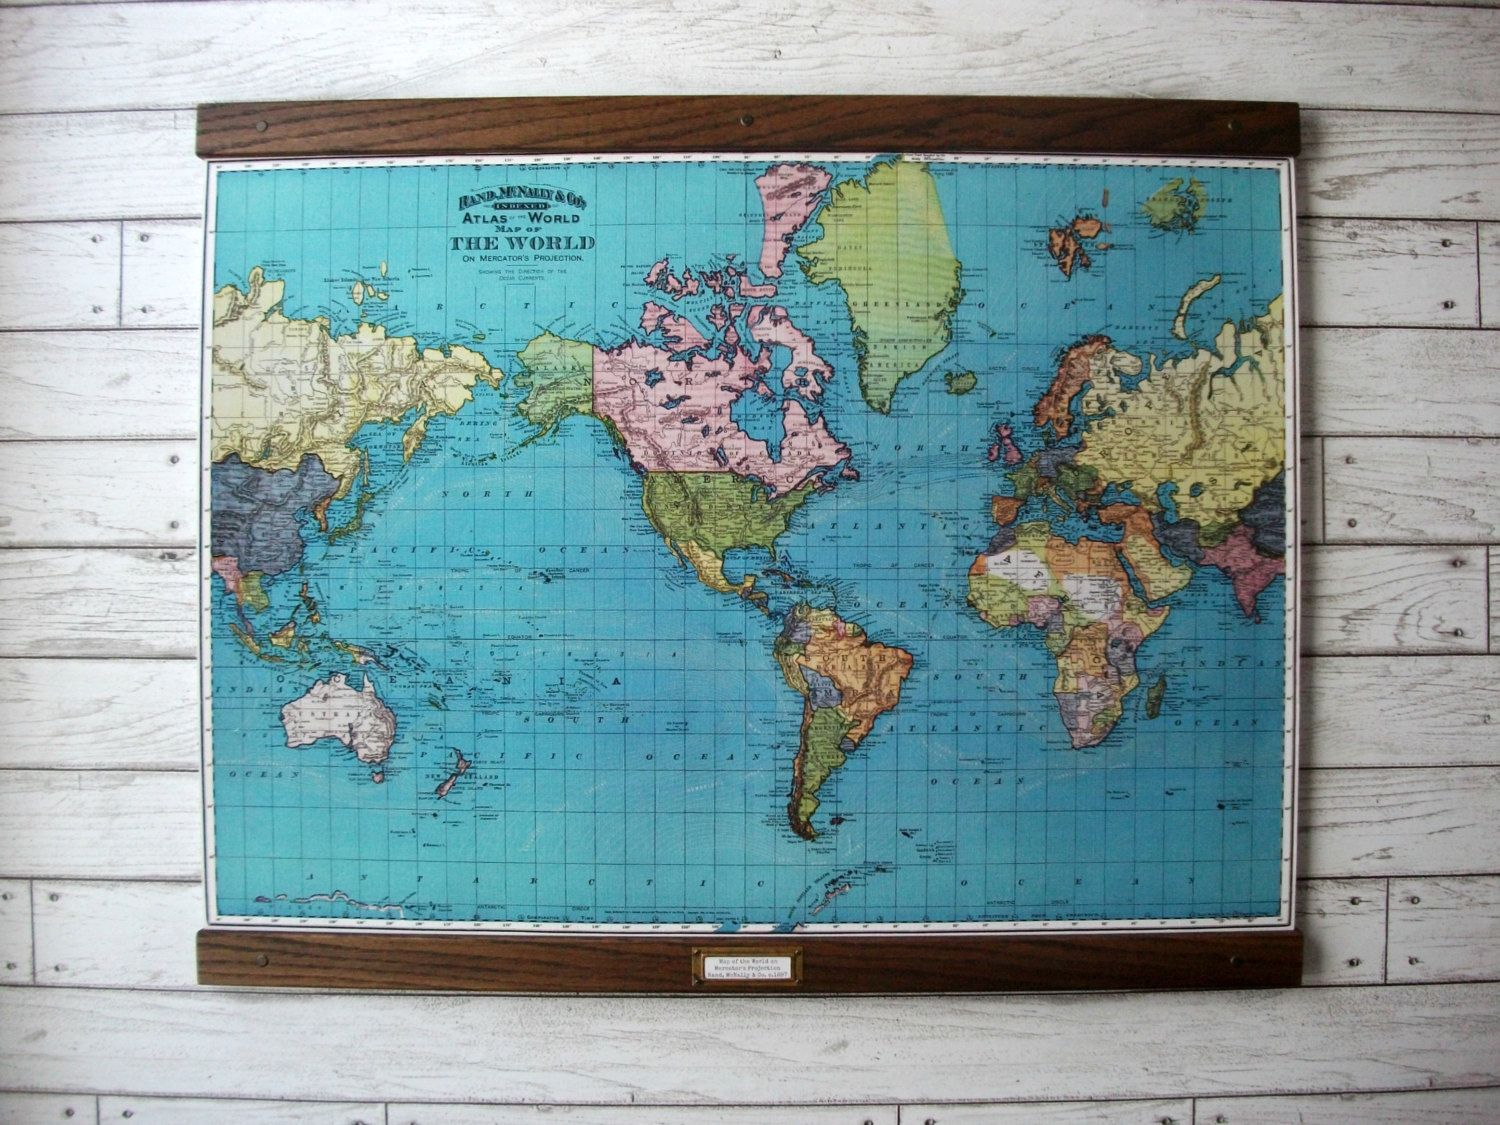 World map 1897 vintage pull down reproduction canvas fabric or large canvas school map vintage pull down style by grittycitygoods 8000 gumiabroncs Image collections